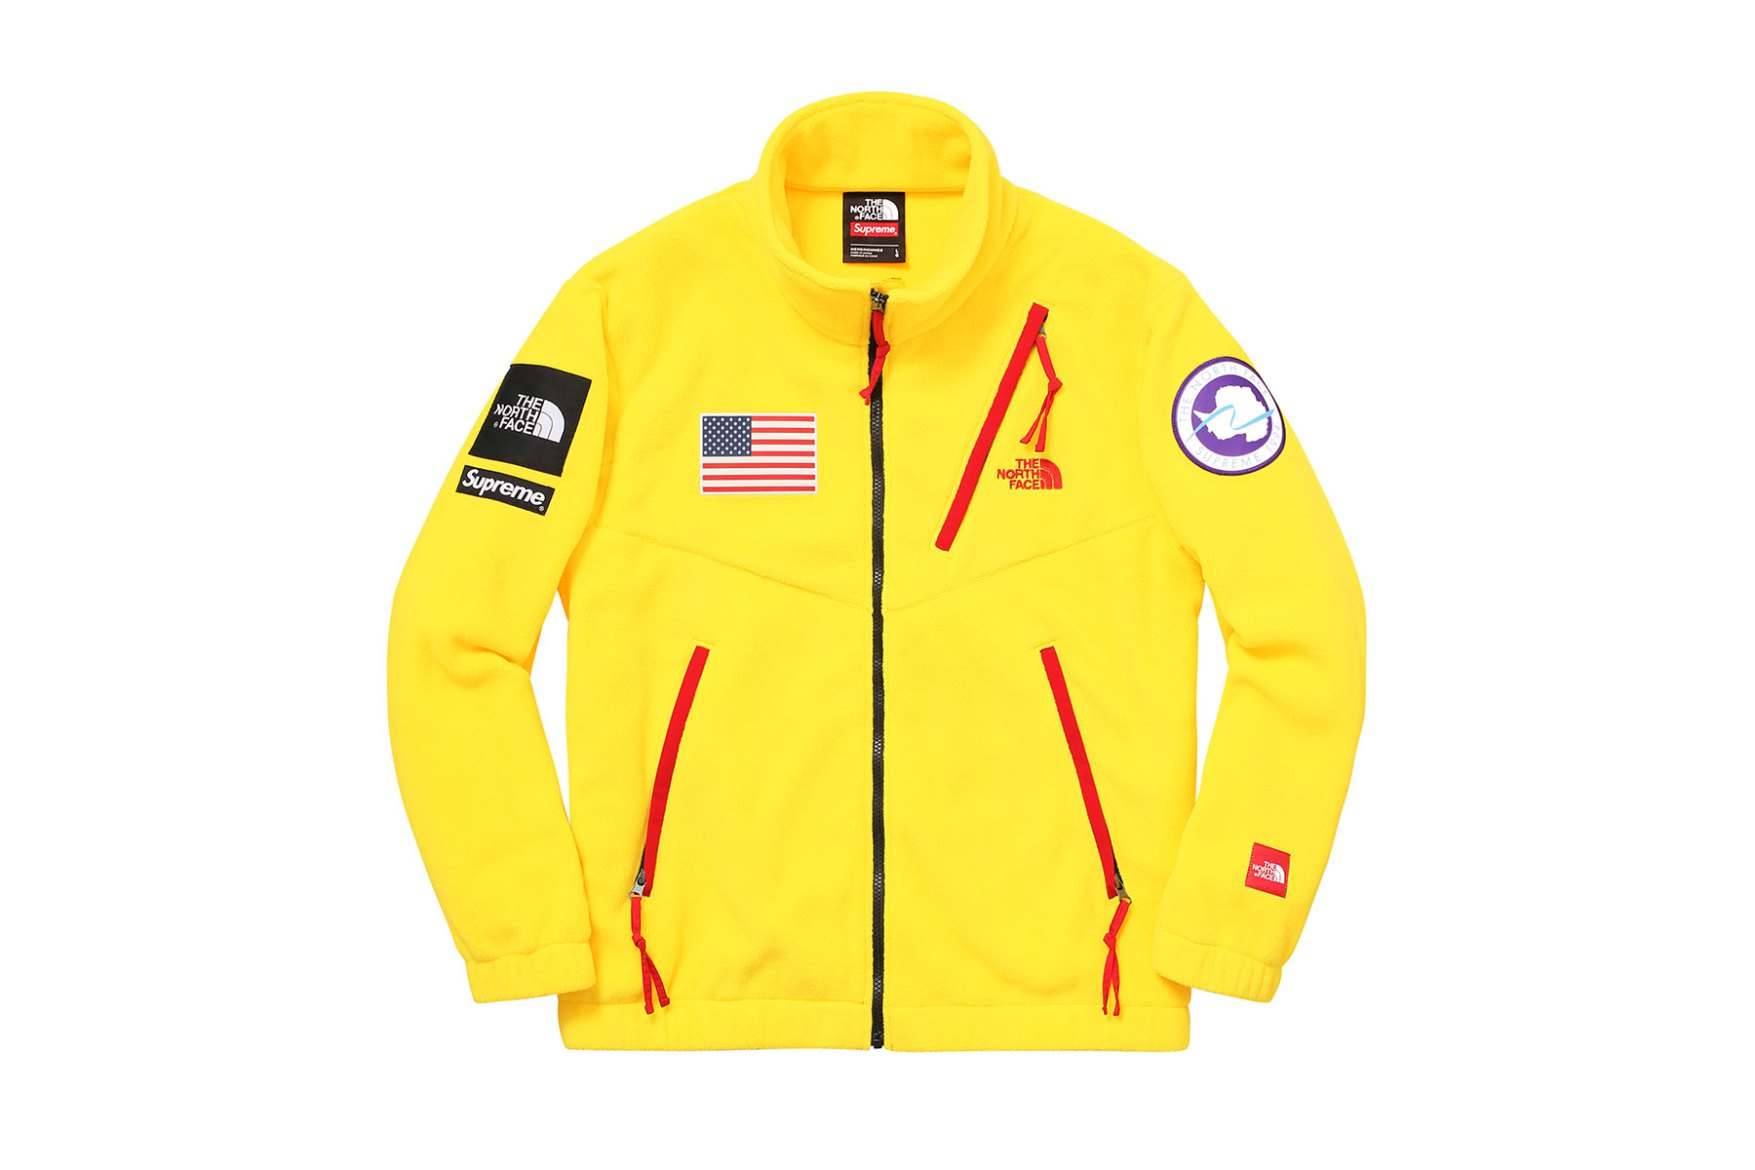 supreme-the-north-face-2017-spring-summer-yellow-polartec-fleece-jacket-25